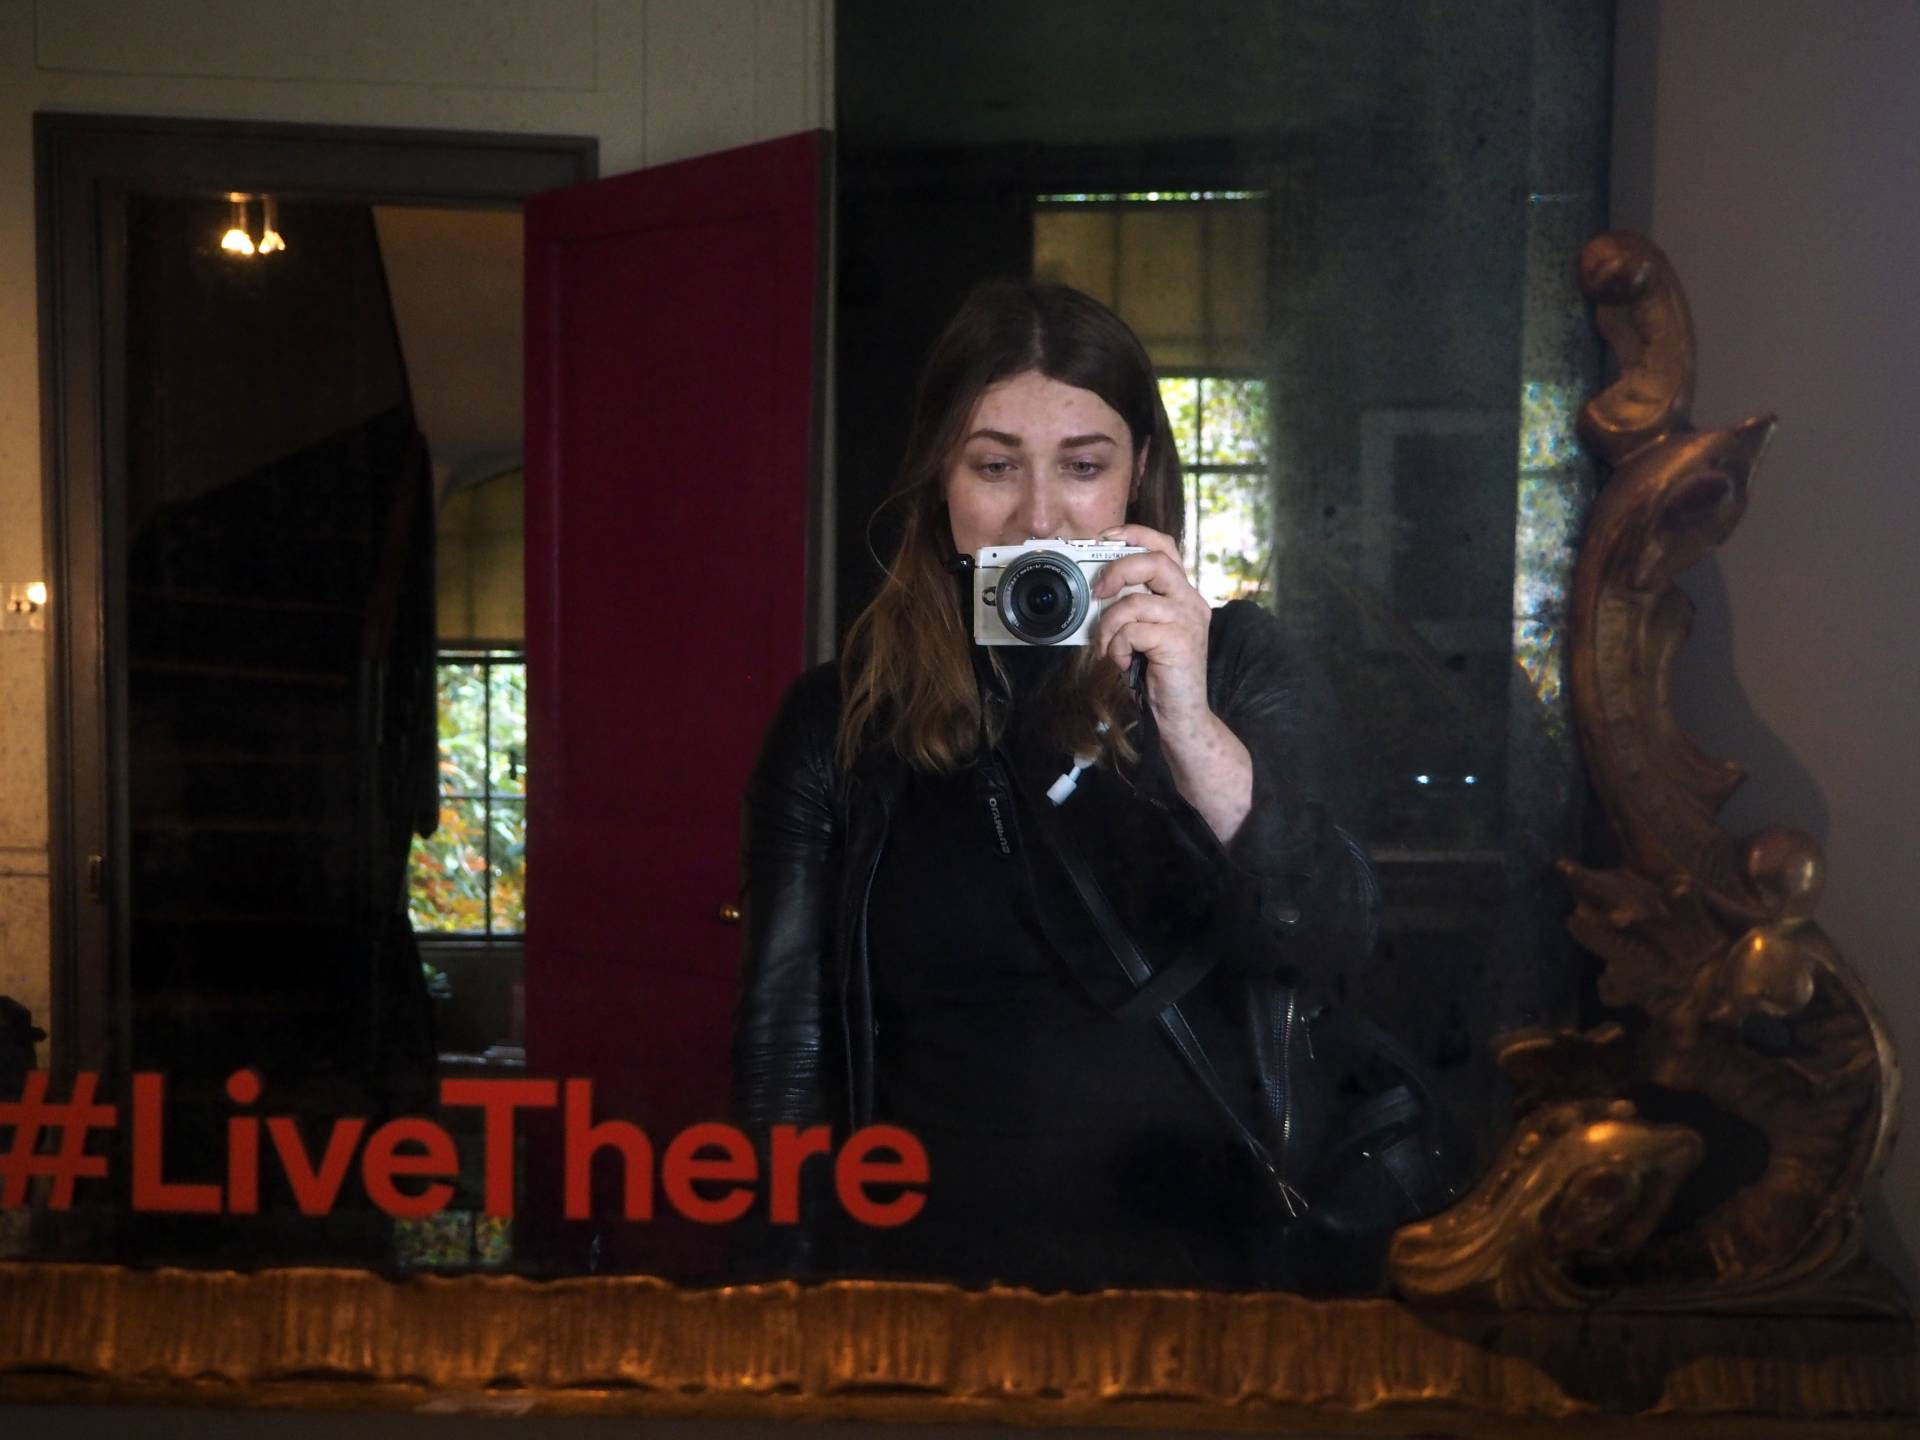 airbnb #LiveThere London